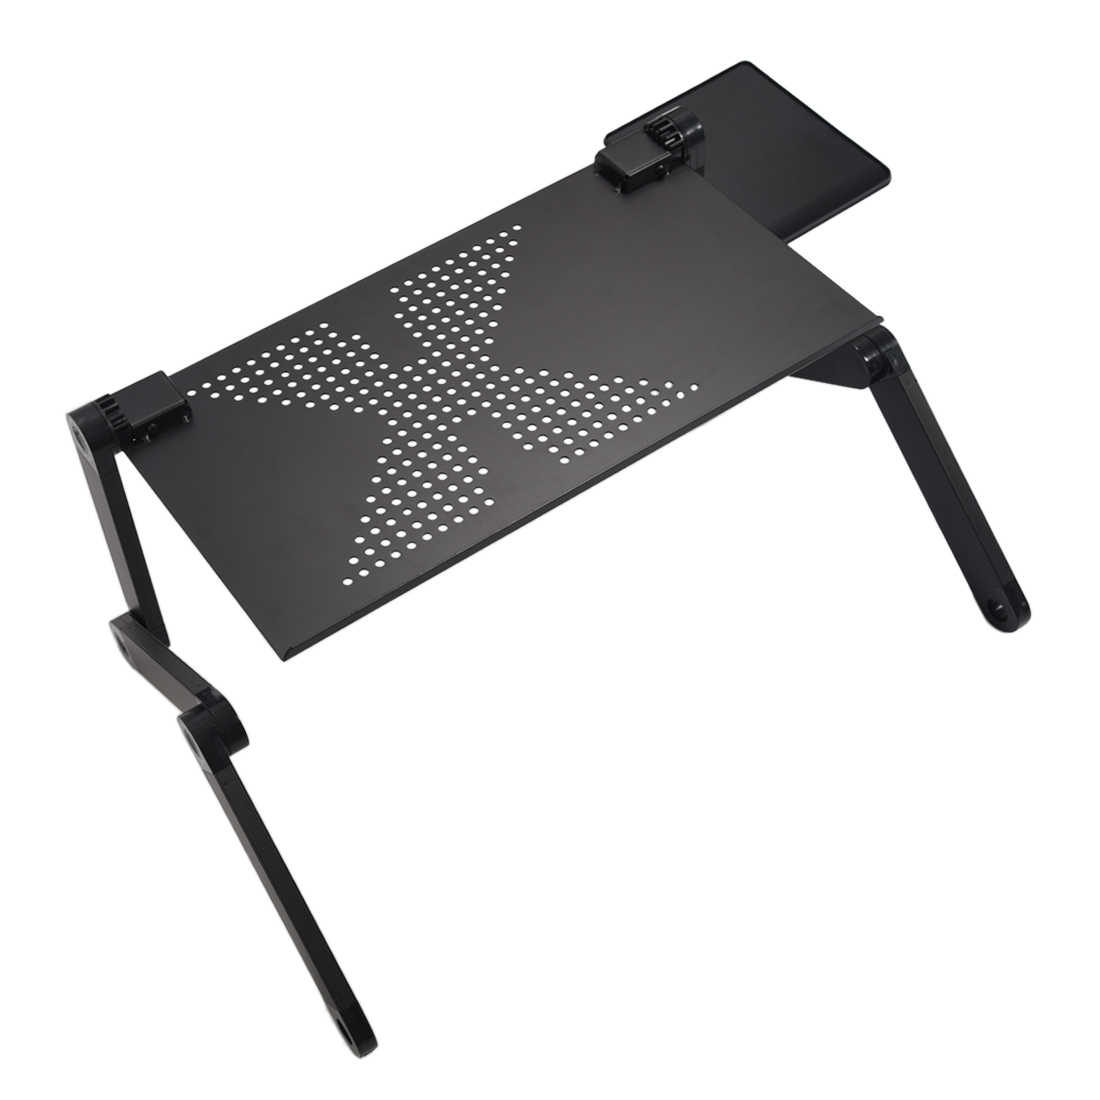 Hot sale Portable Foldable Adjustable Laptop Desk Computer Table Stand Tray For Sofa Bed Black(China)